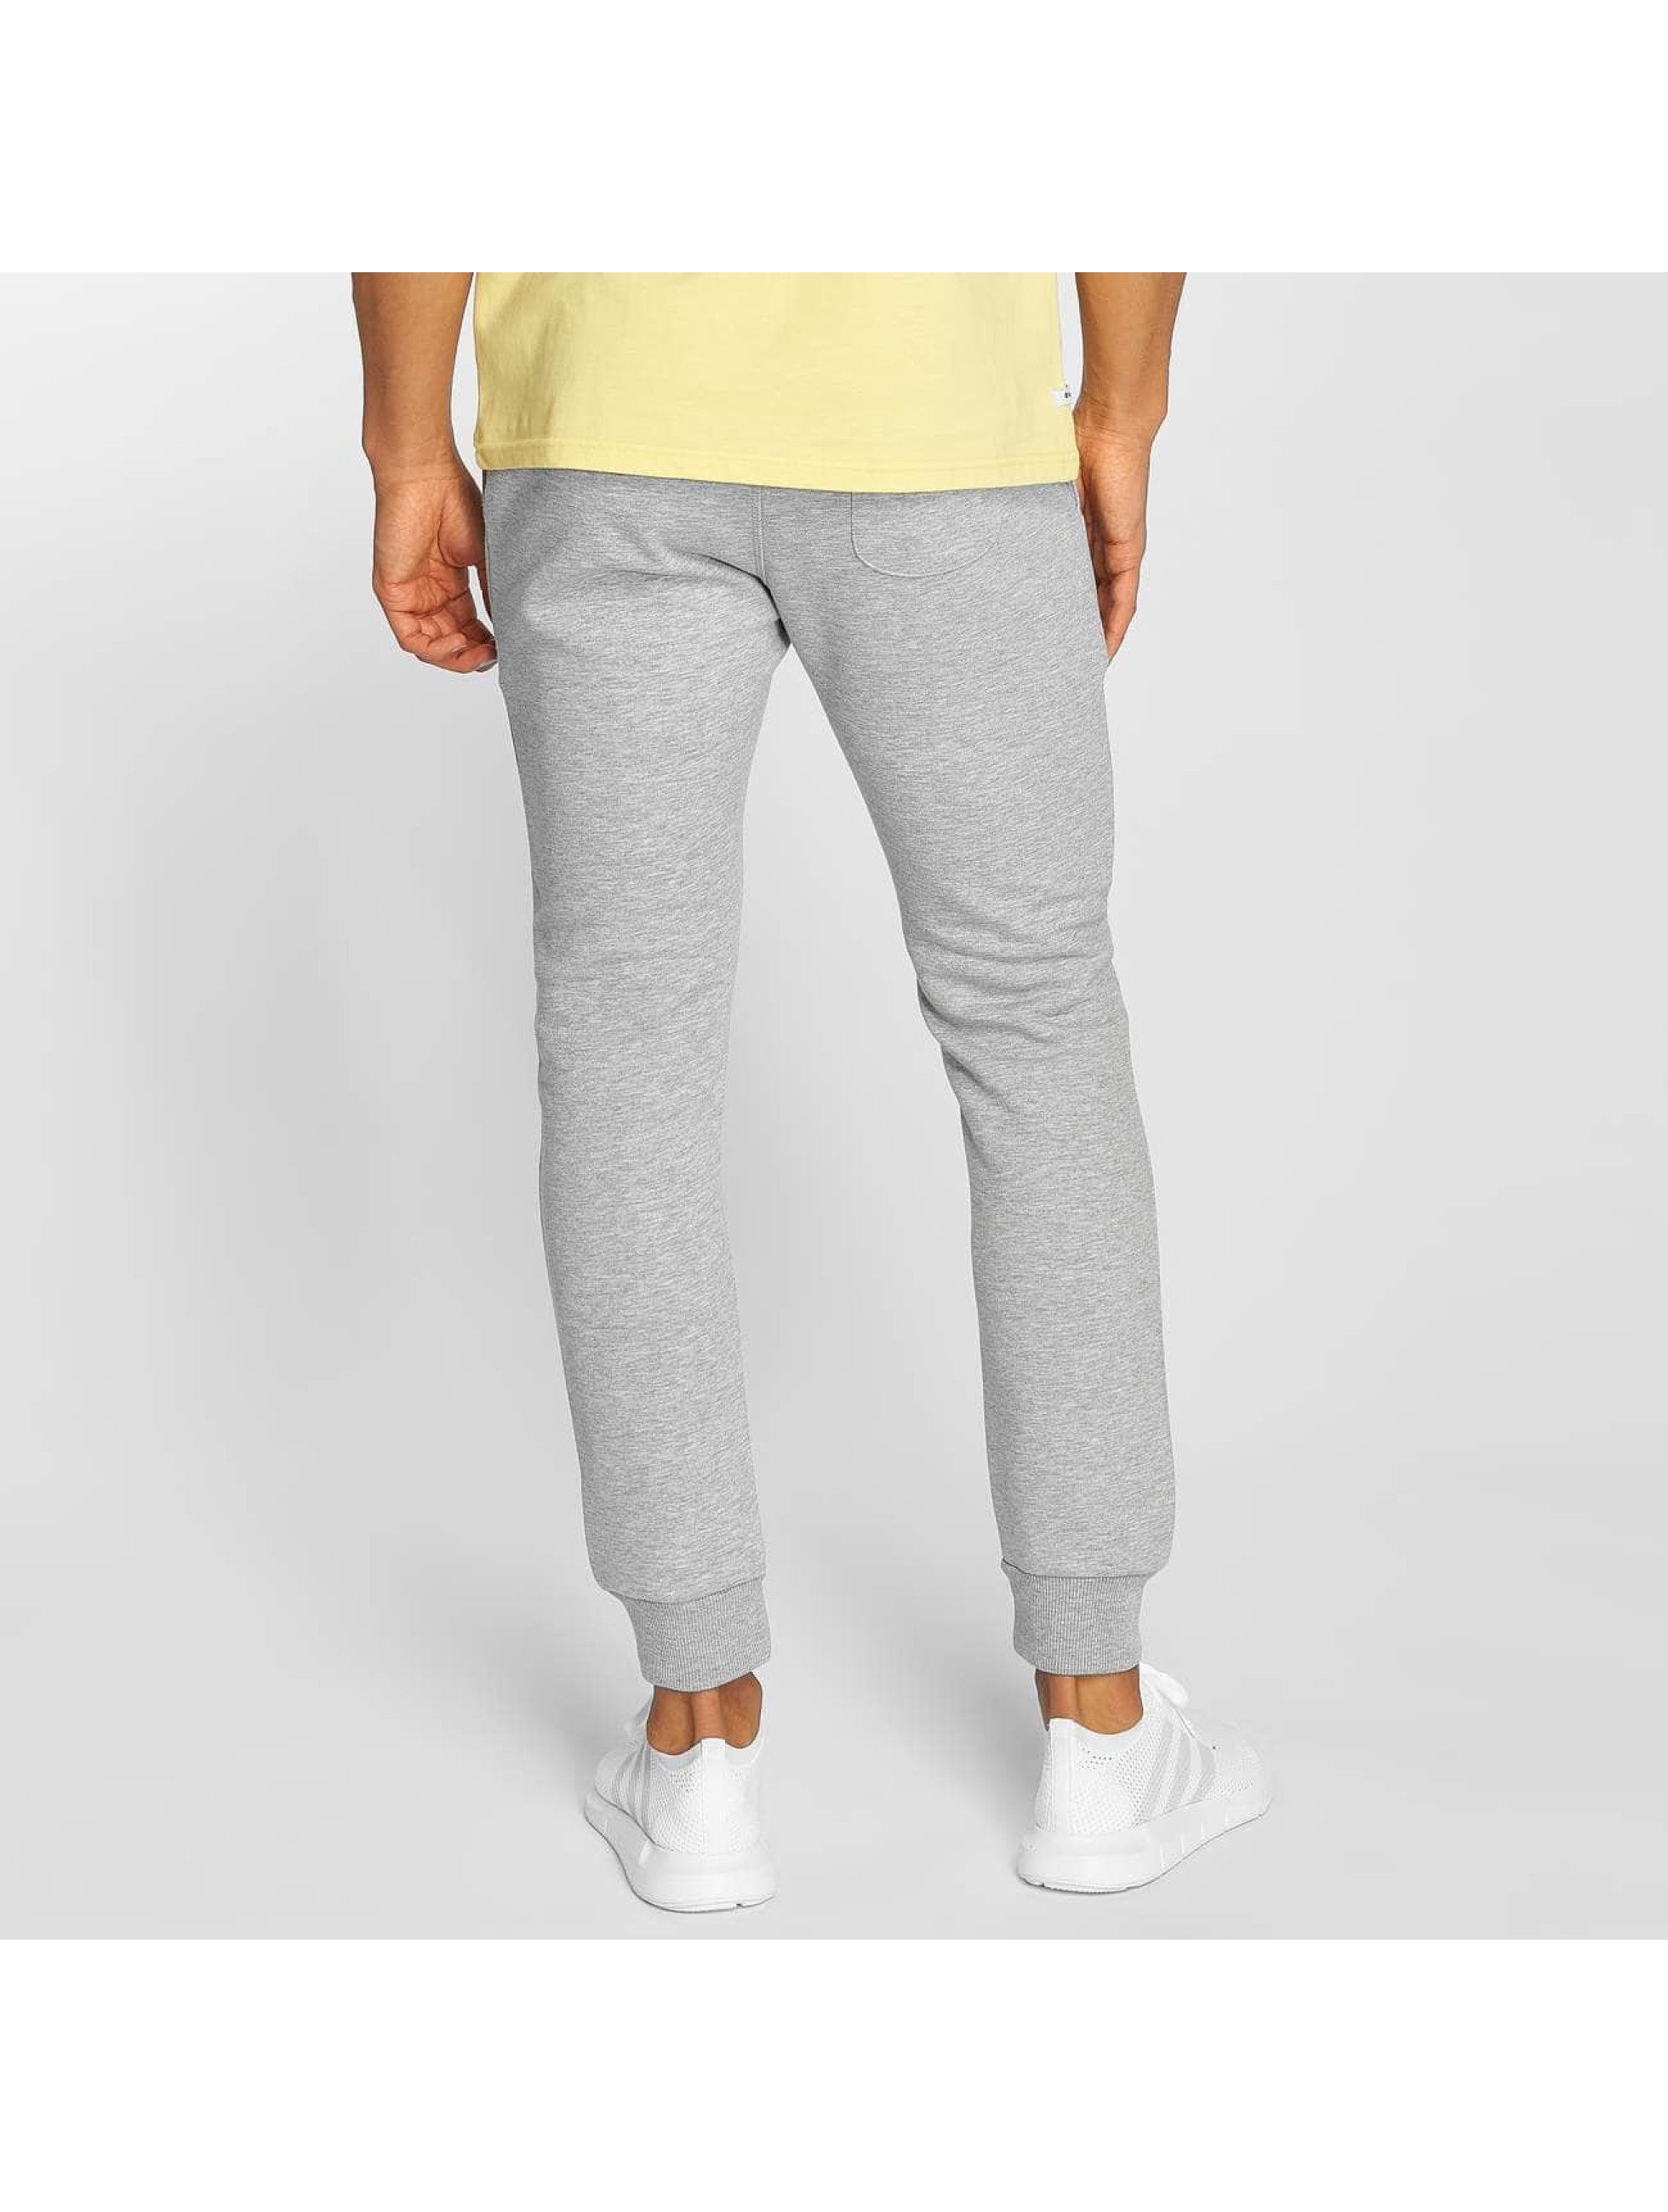 Kulte joggingbroek Jog Sweat grijs